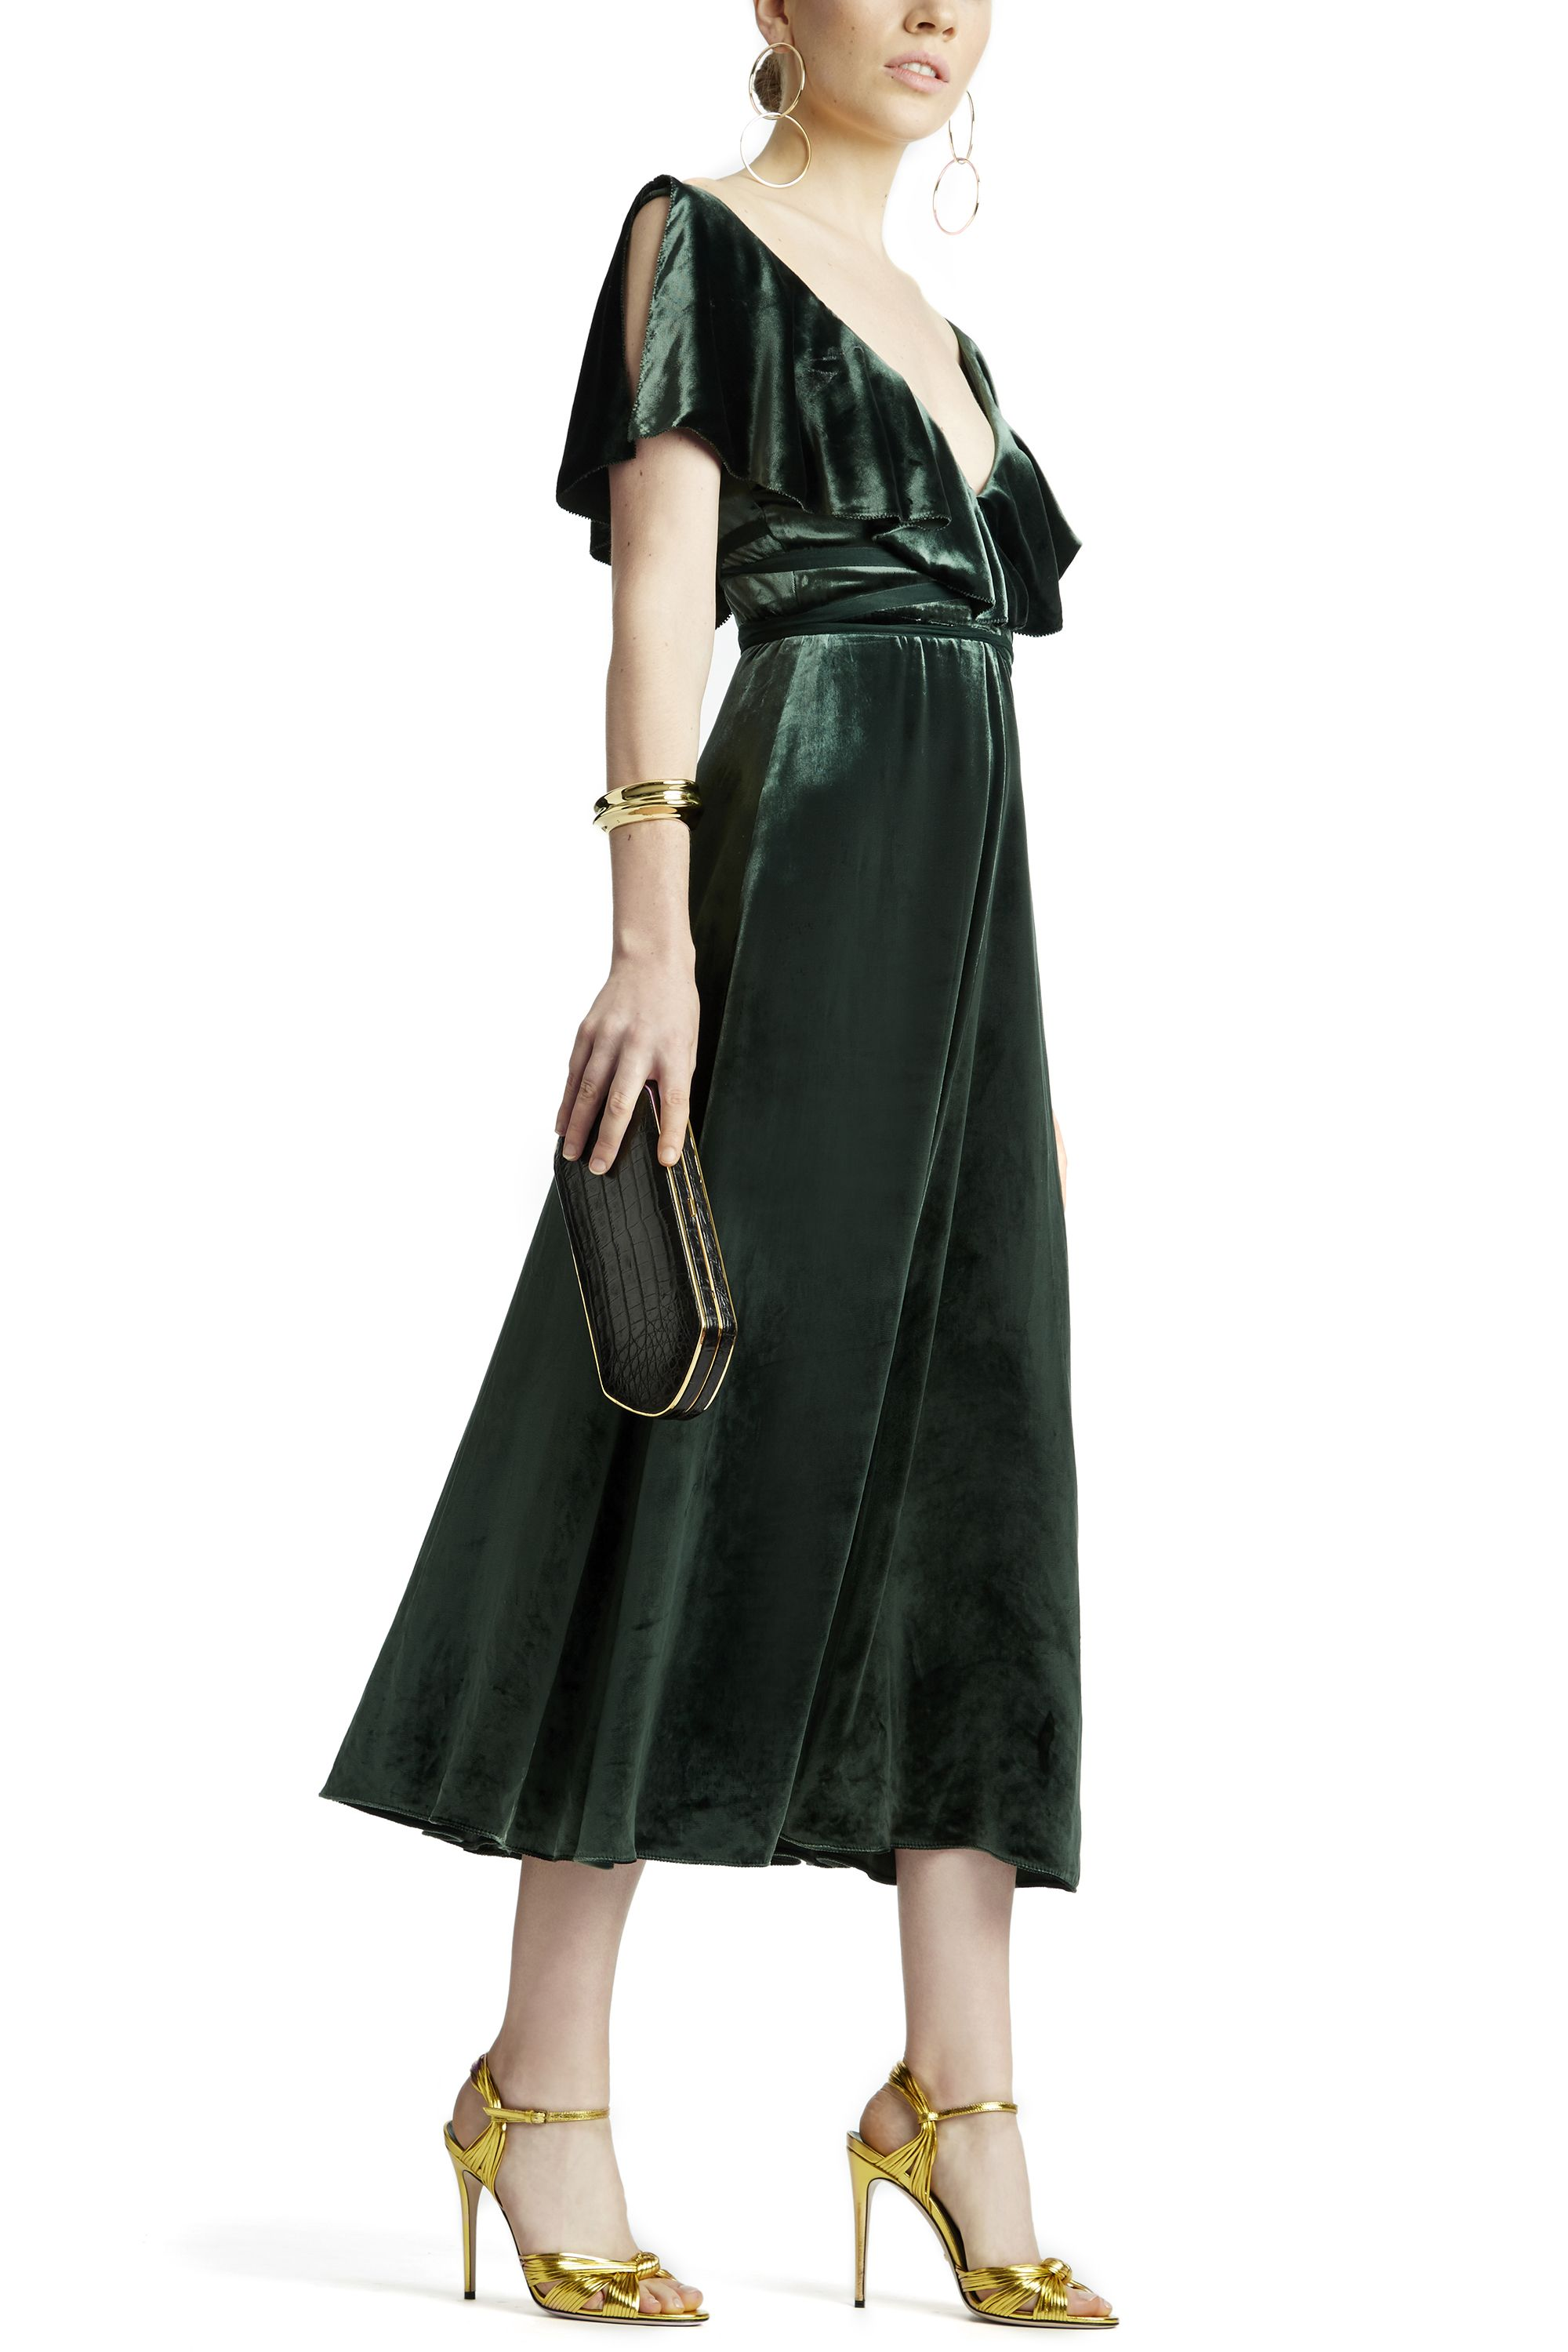 """<p>""""For a classic take on evening-wear embrace the shoulder-grazing silhouette, and just add chic gold accents like a statement earring and standout shoe.""""<span class=""""redactor-invisible-space"""" data-verified=""""redactor"""" data-redactor-tag=""""span"""" data-redactor-class=""""redactor-invisible-space"""">—<span class=""""redactor-invisible-space""""> <strong data-redactor-tag=""""strong"""" data-verified=""""redactor"""">Nicole Fritton, Fashion Market & Accessories Director, on her styling</strong></span></span></p>"""